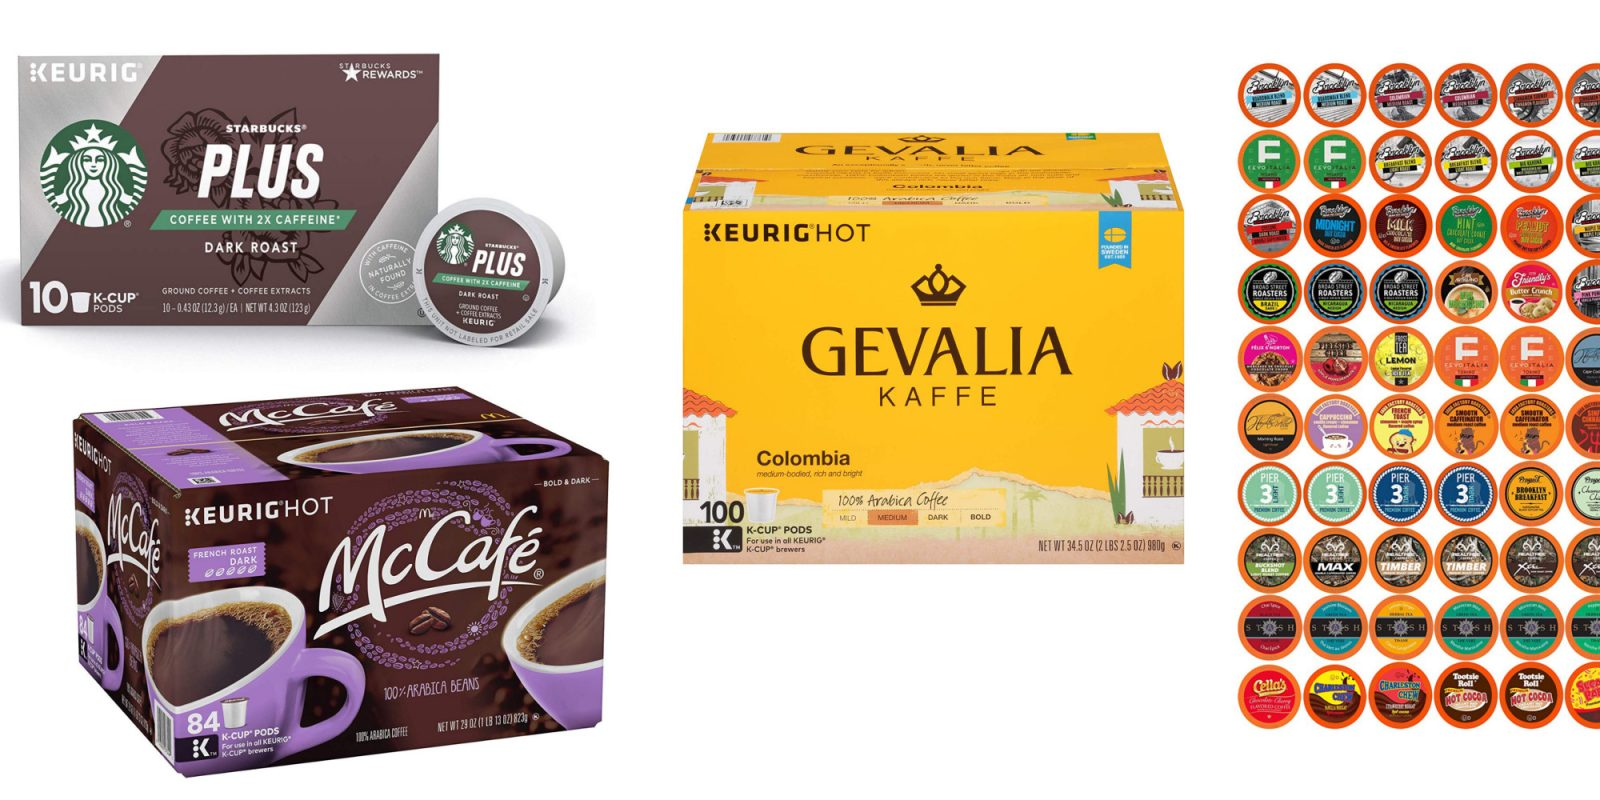 Prime Day coffee pod packs from $21: McCafé, Starbucks, Victor Allen's, more